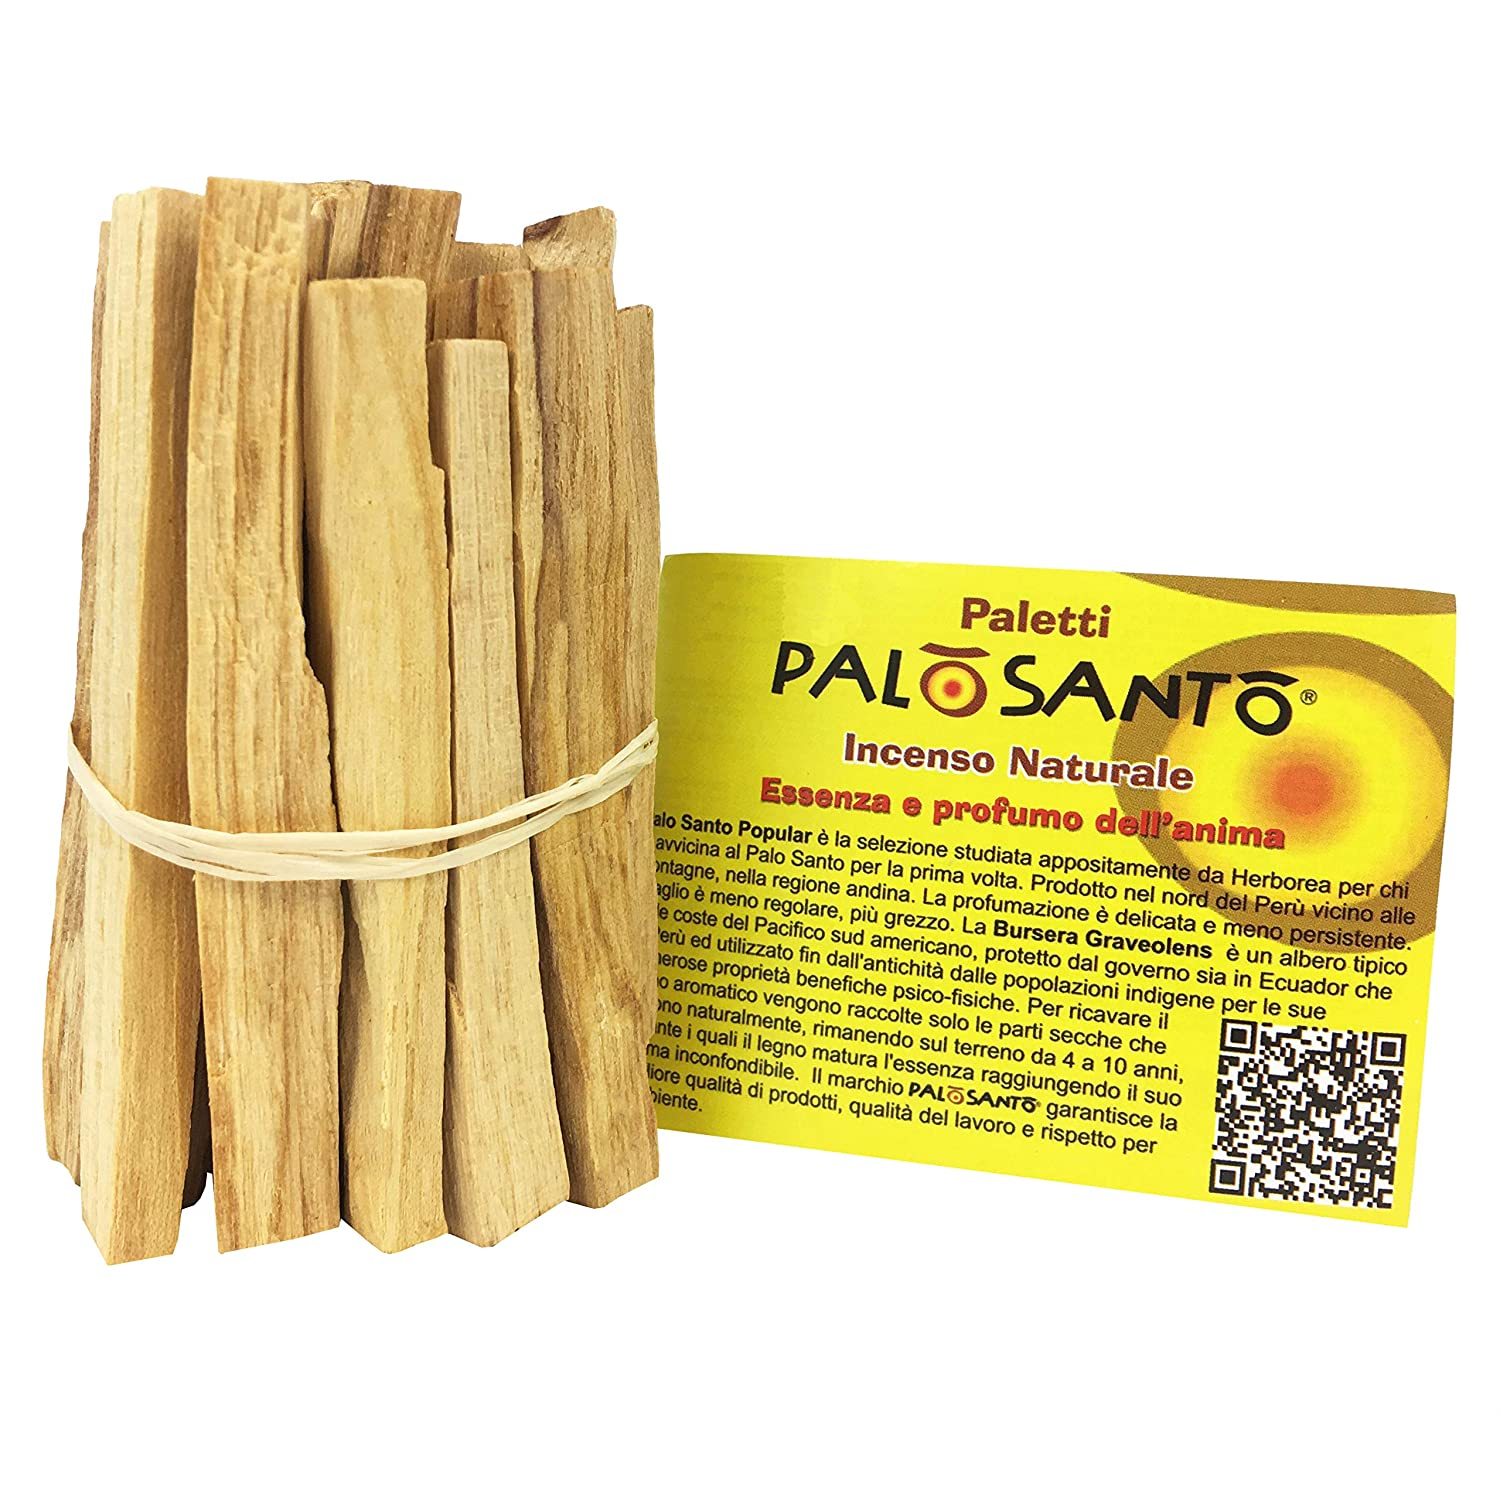 a bundle of wild harvested sustainably sourced palo santo sticks by Paletti